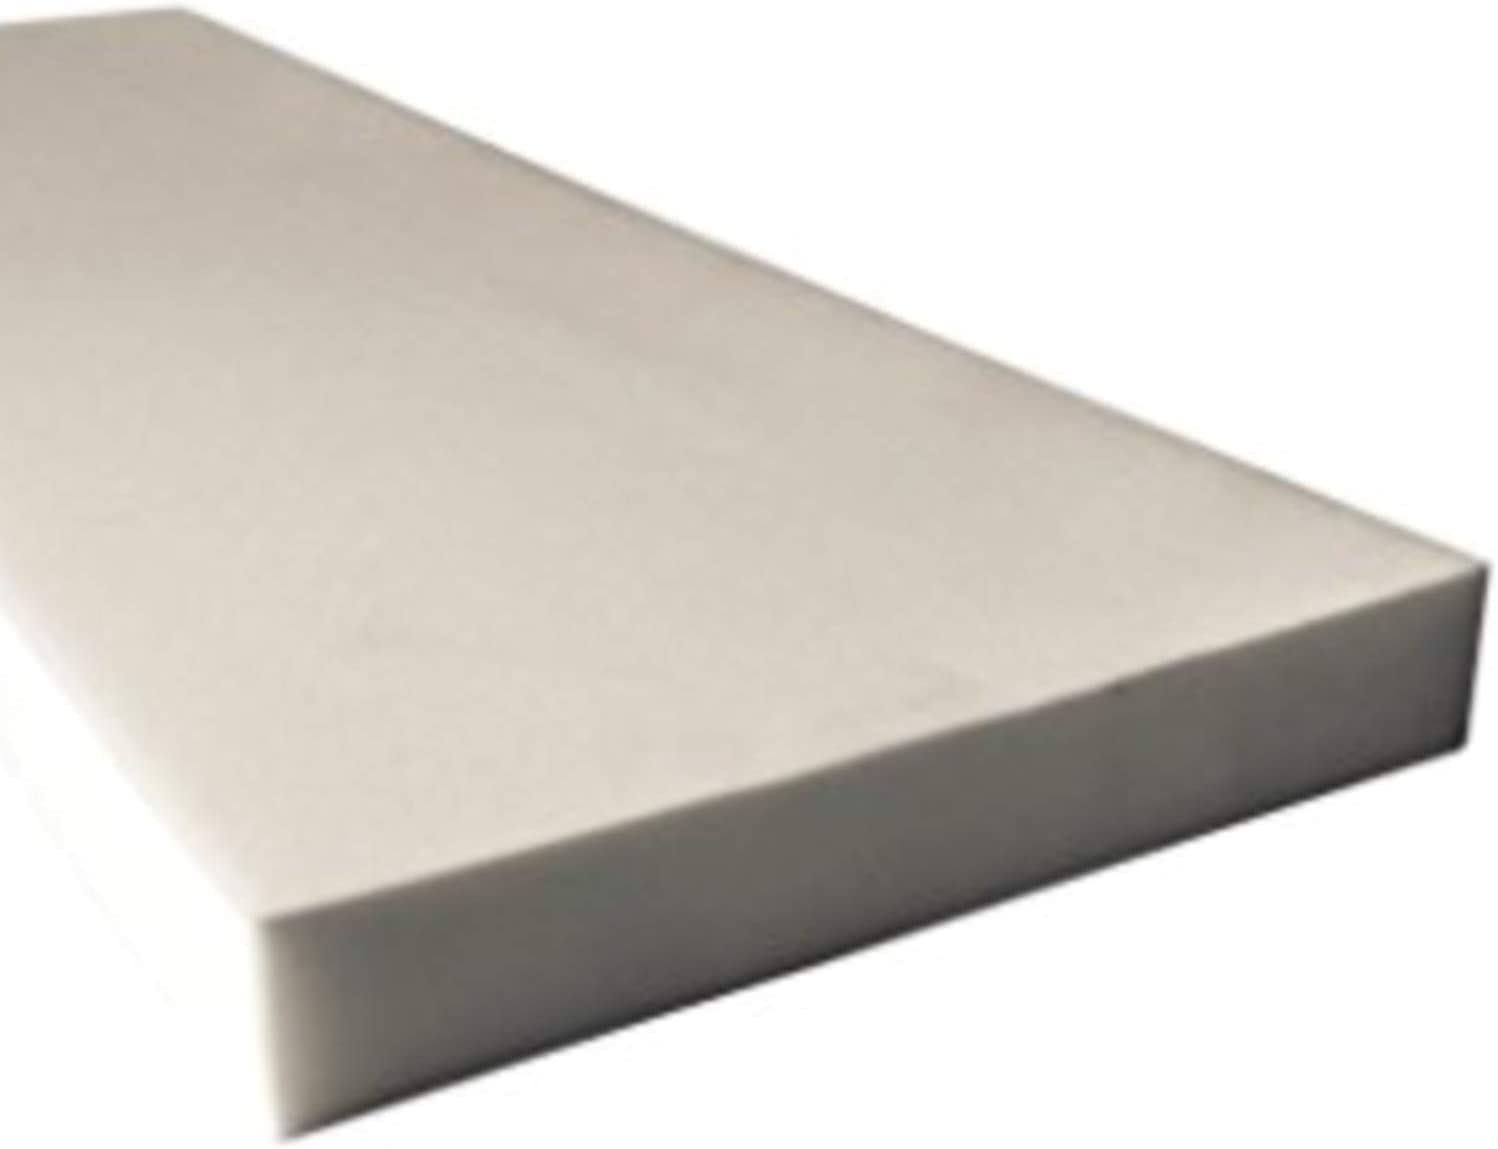 Seat Replacement Foam Sheet//Padding 0.5 x 24 x 82 inches. BayTrim Upholstery High Density Cushion